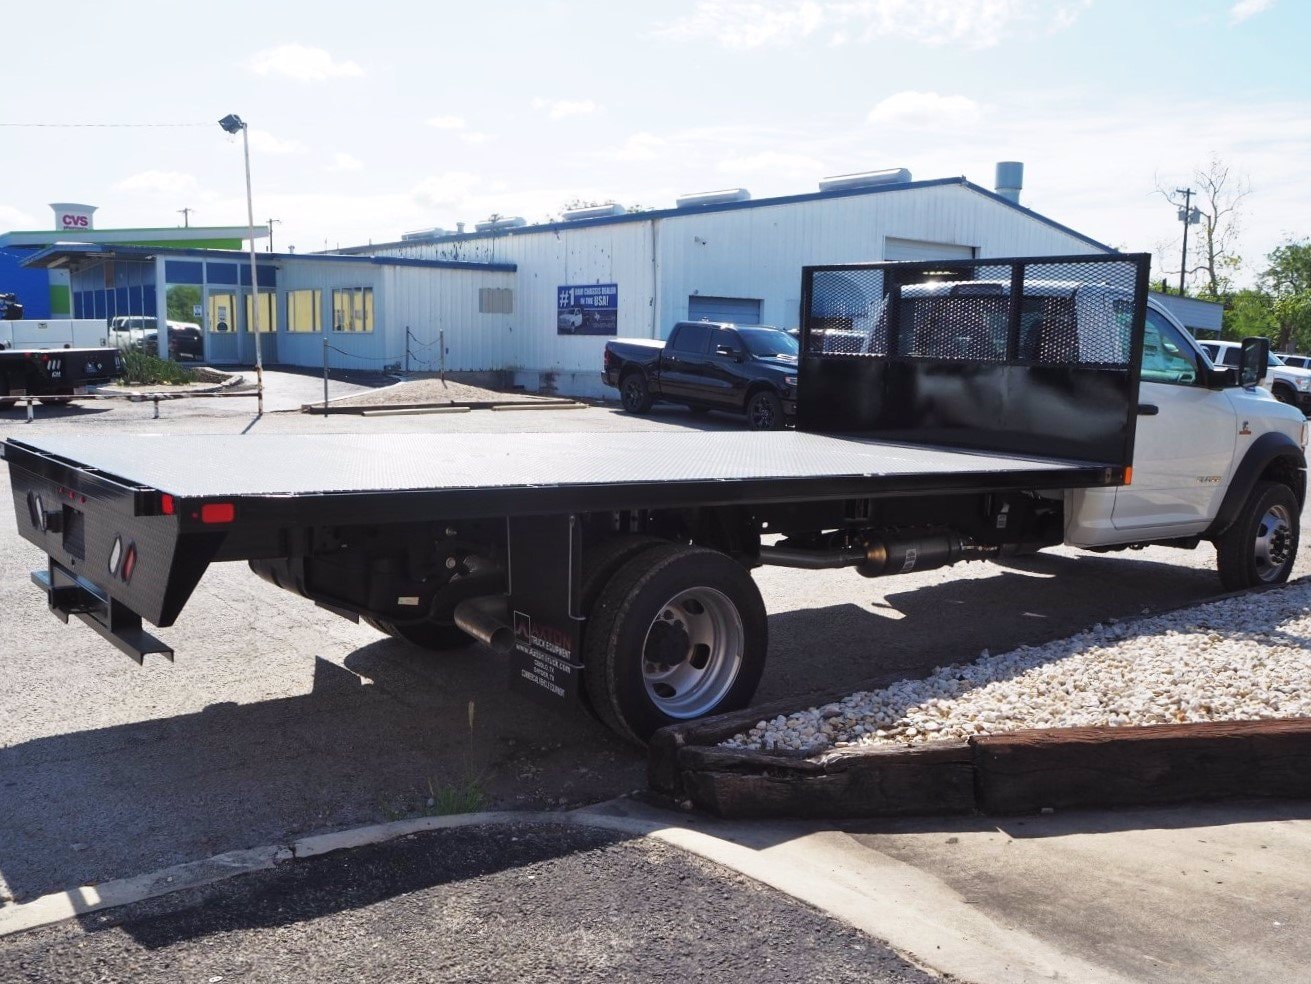 2019 Ram 5500 Regular Cab DRW 4x2, Axton Truck Equipment Flatbed #TG717489 - photo 1